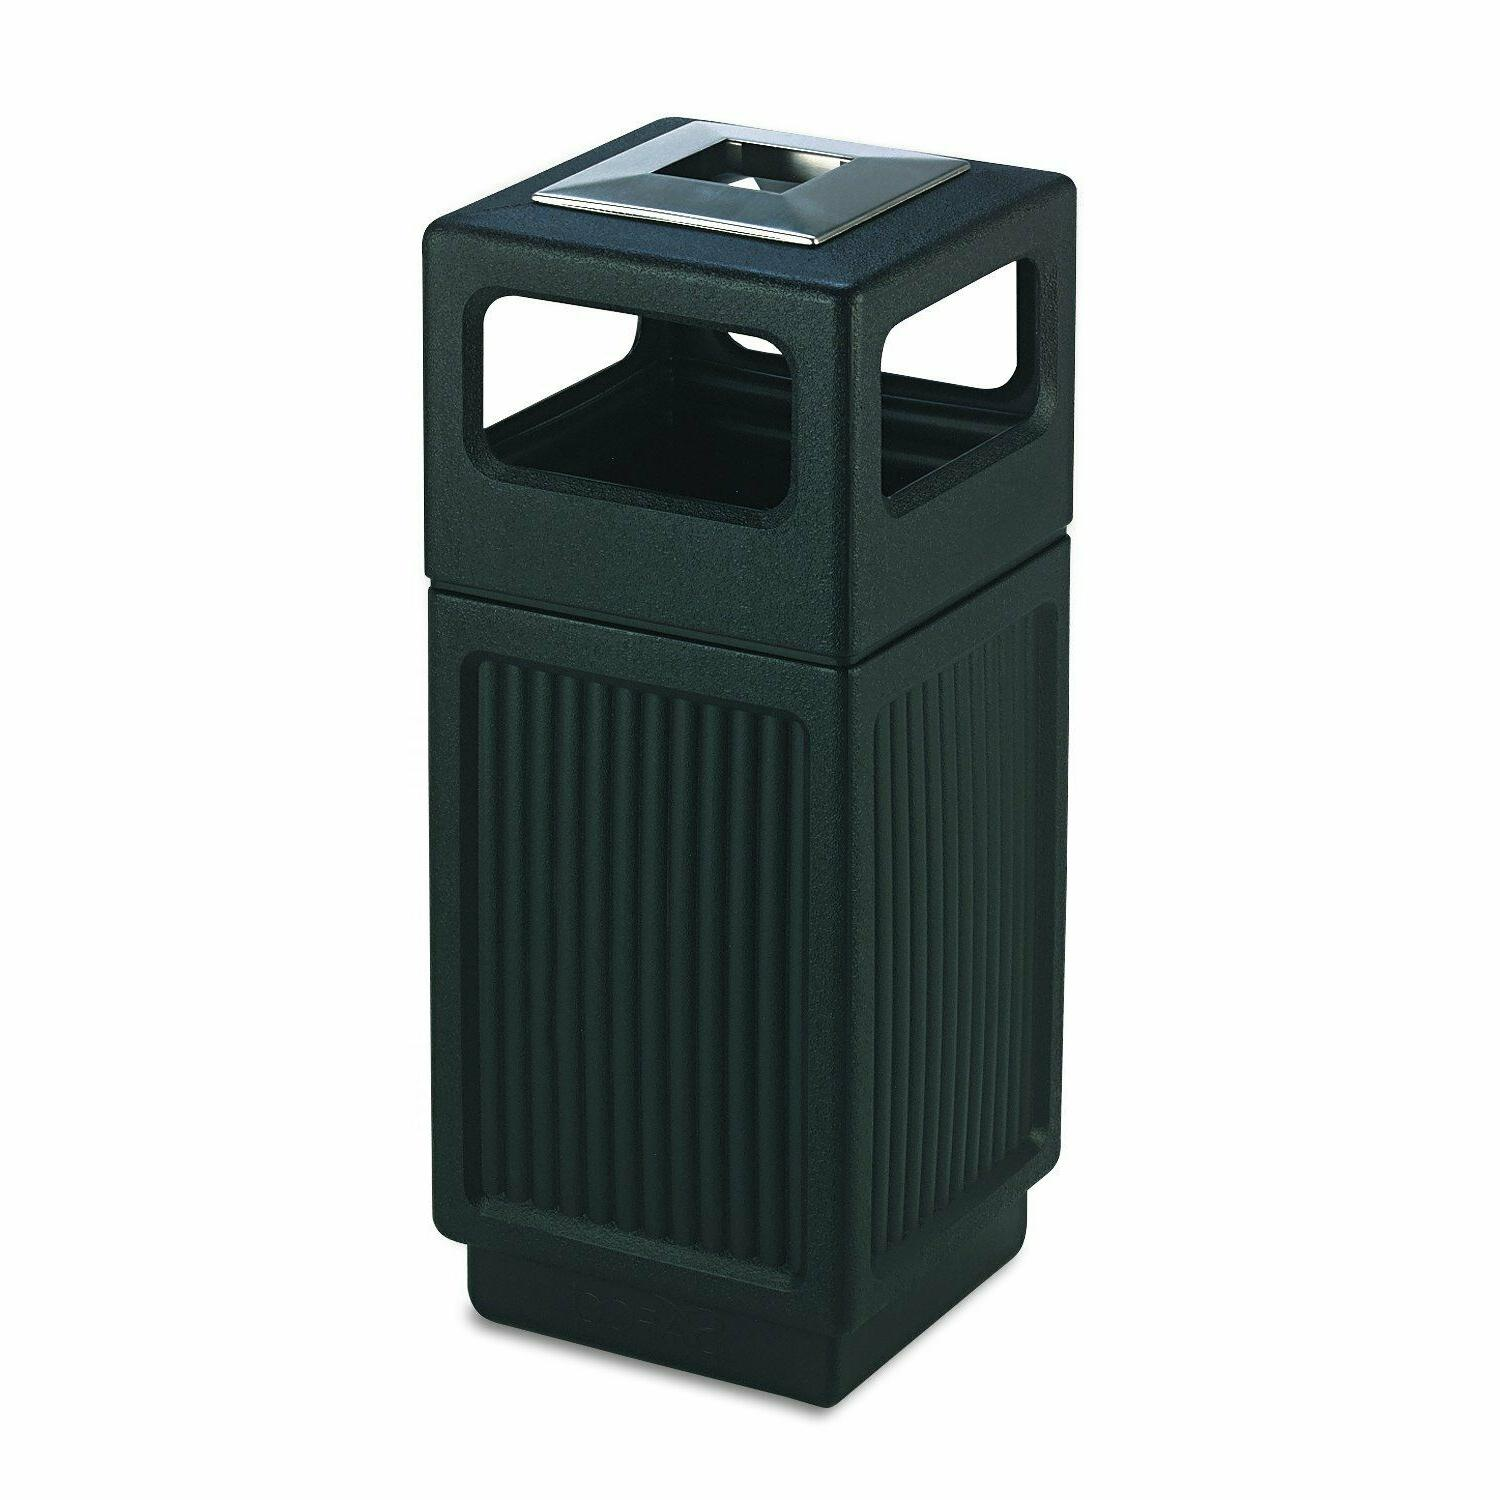 Commercial Trash Can Restaurant outdoor Large Garbage Waste